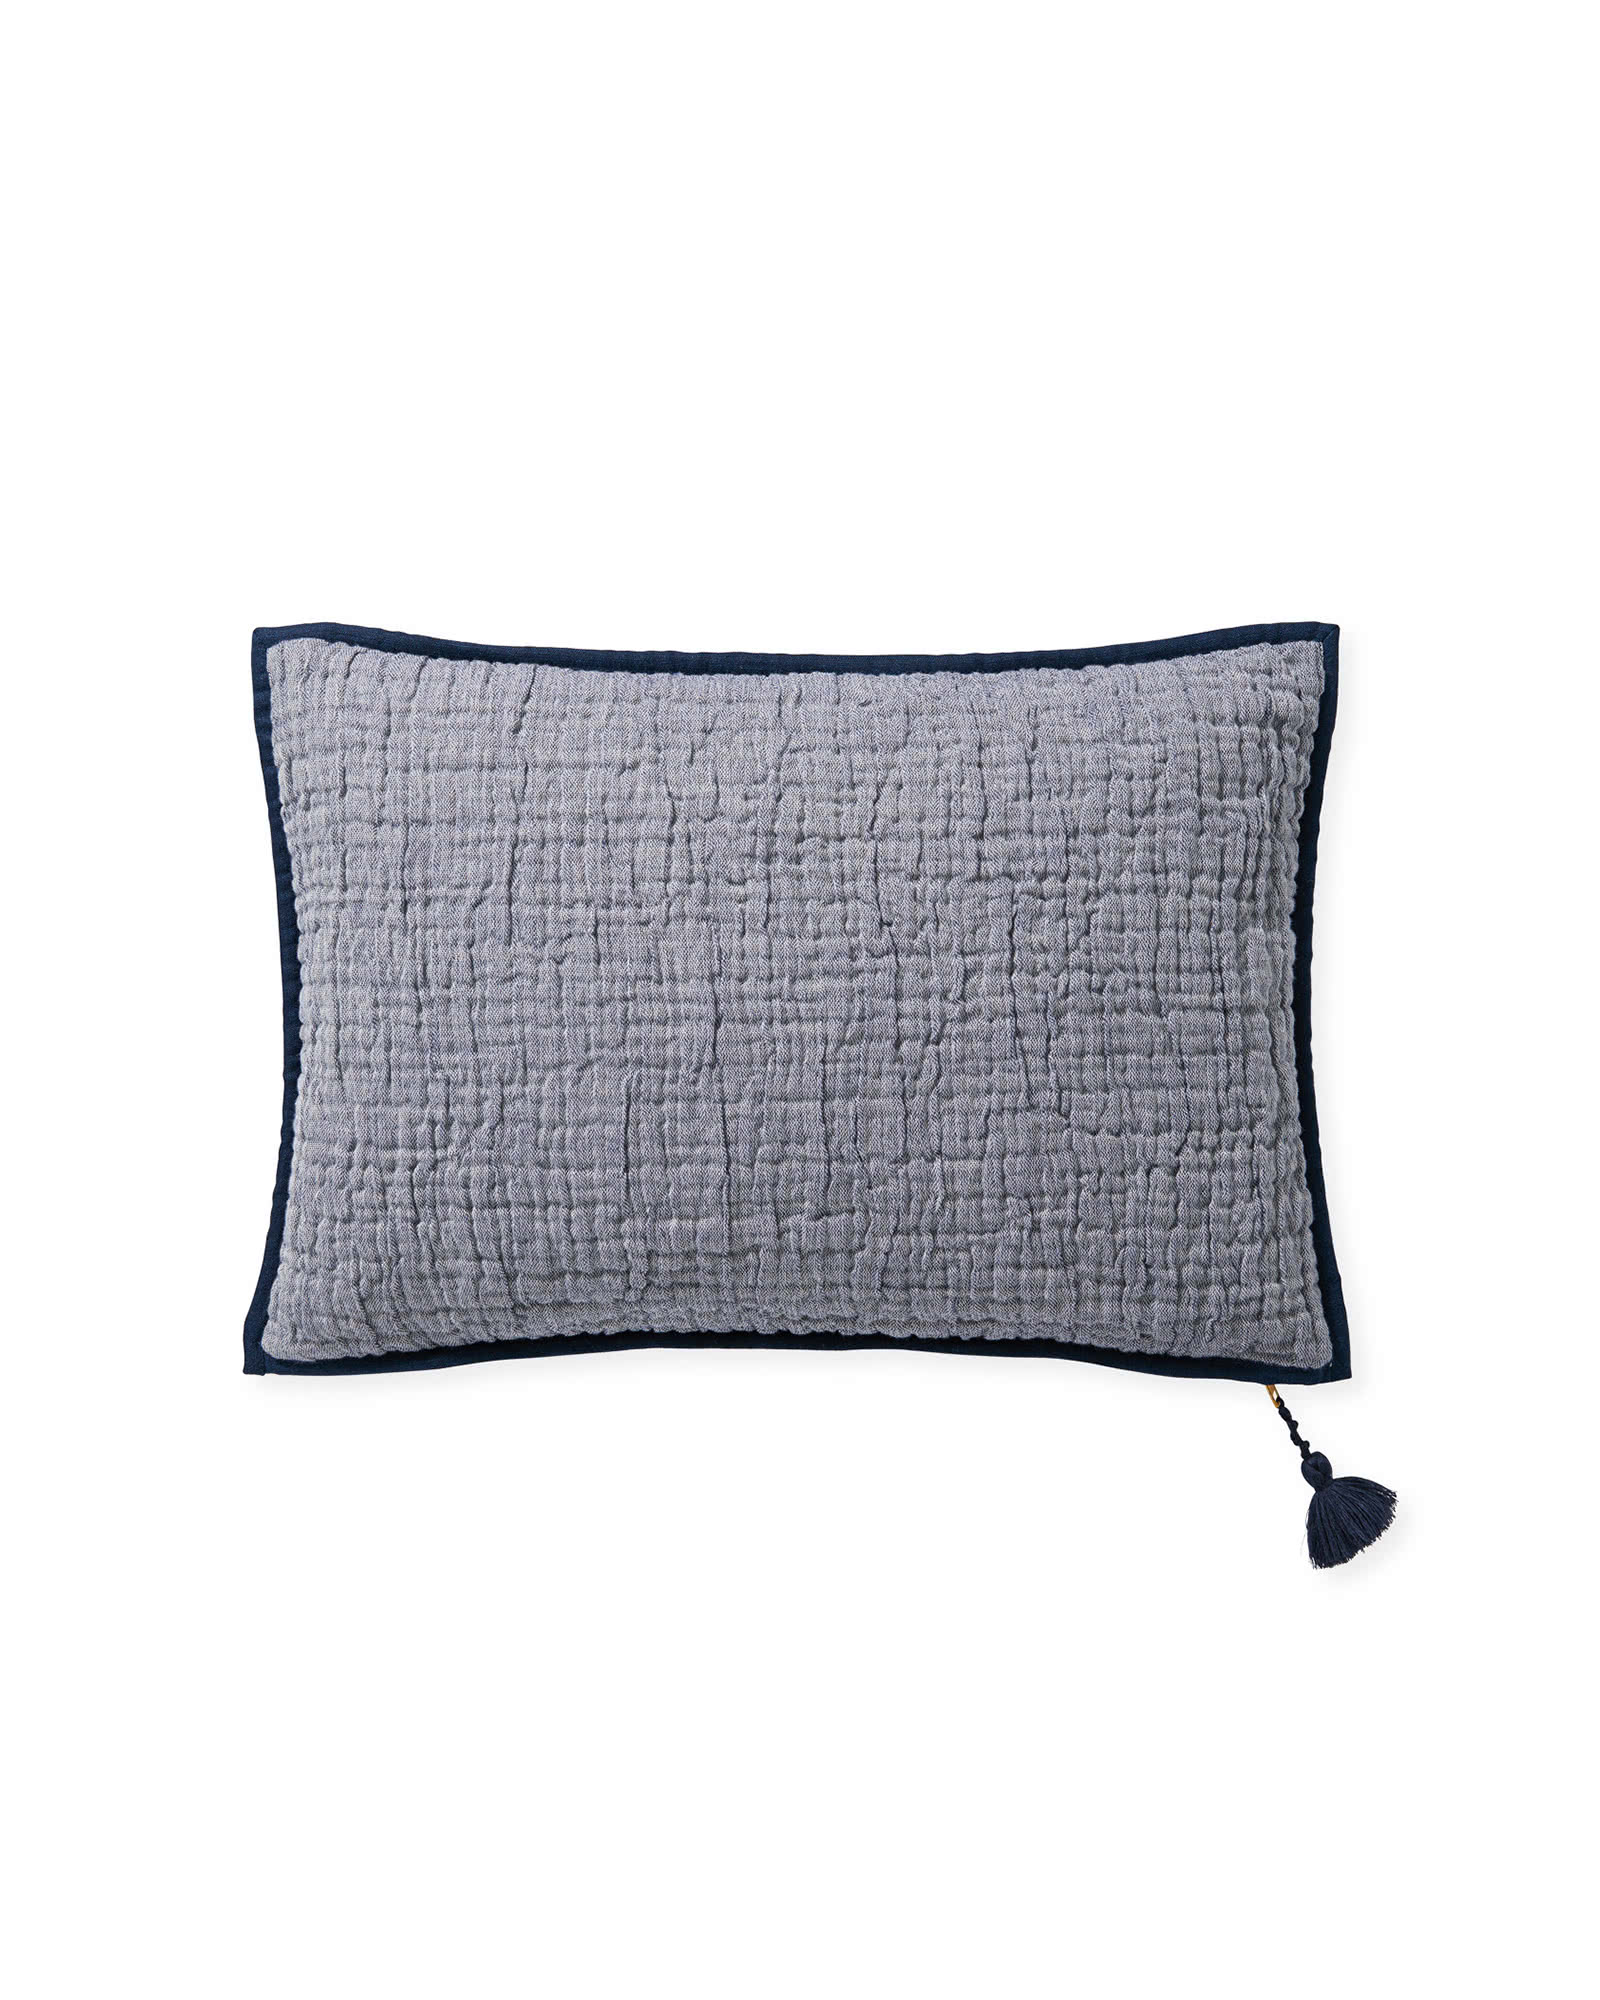 Melville Pillow Cover,